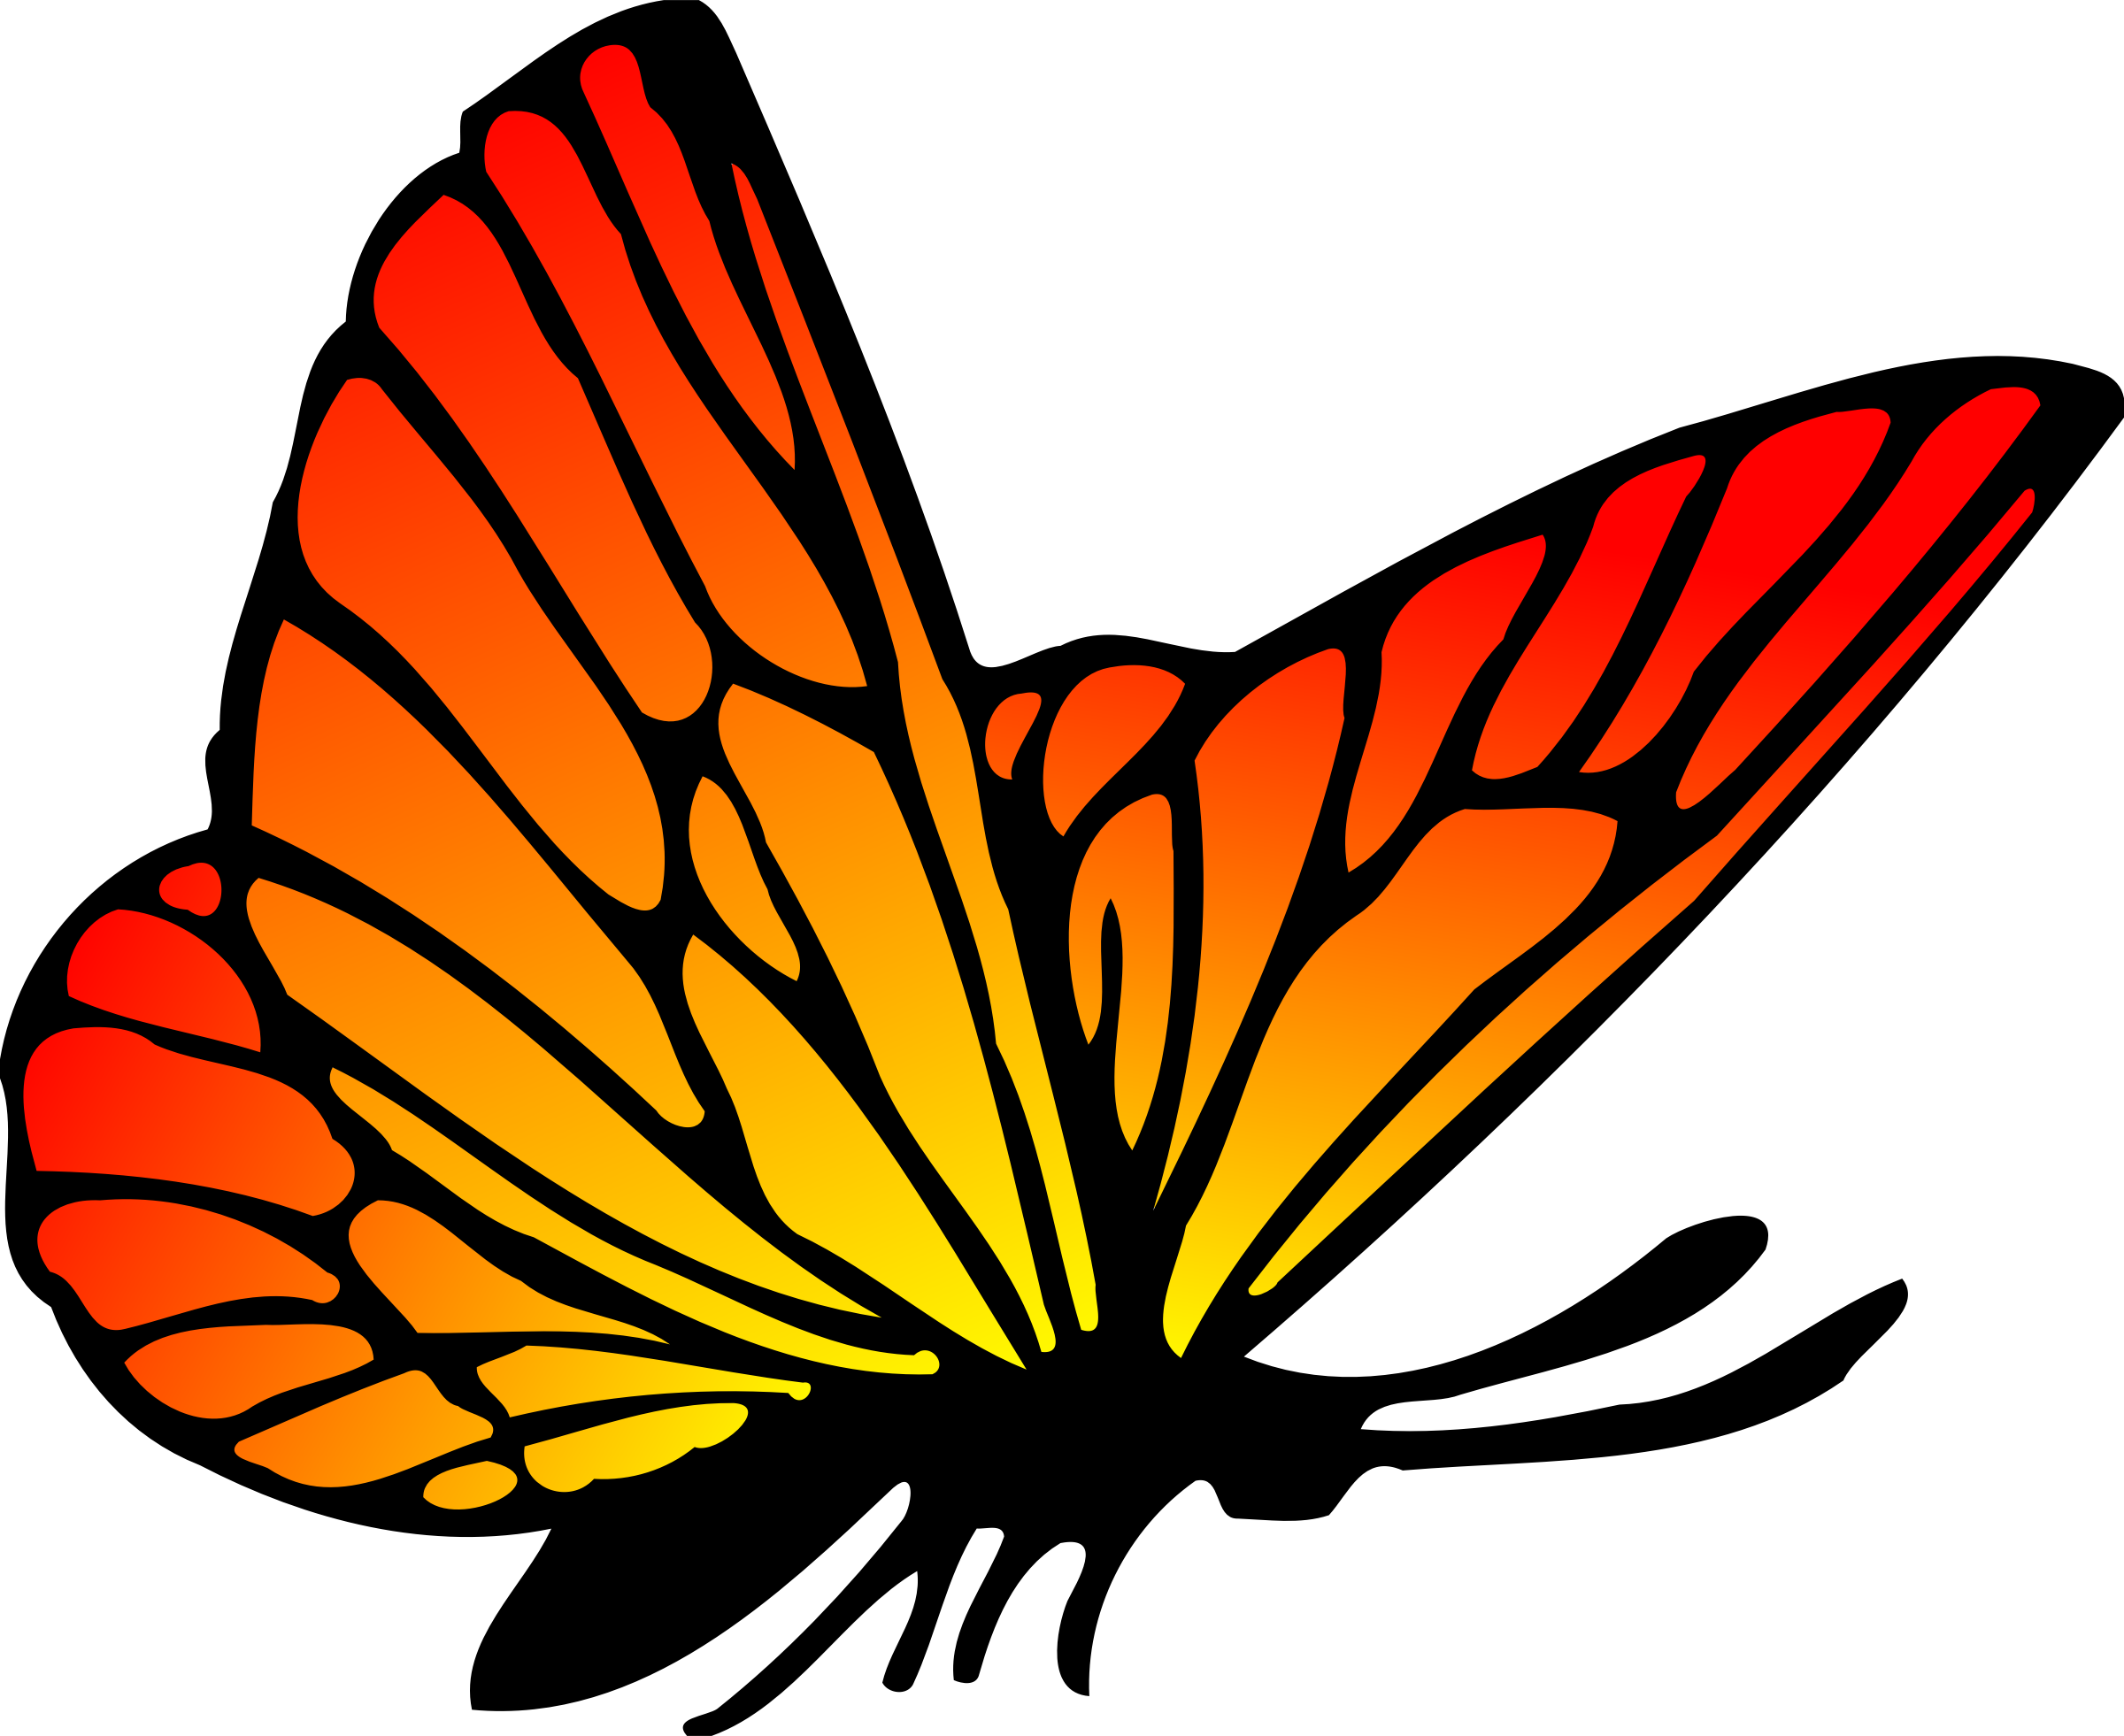 Red Orange Butterfly vector clipart image.